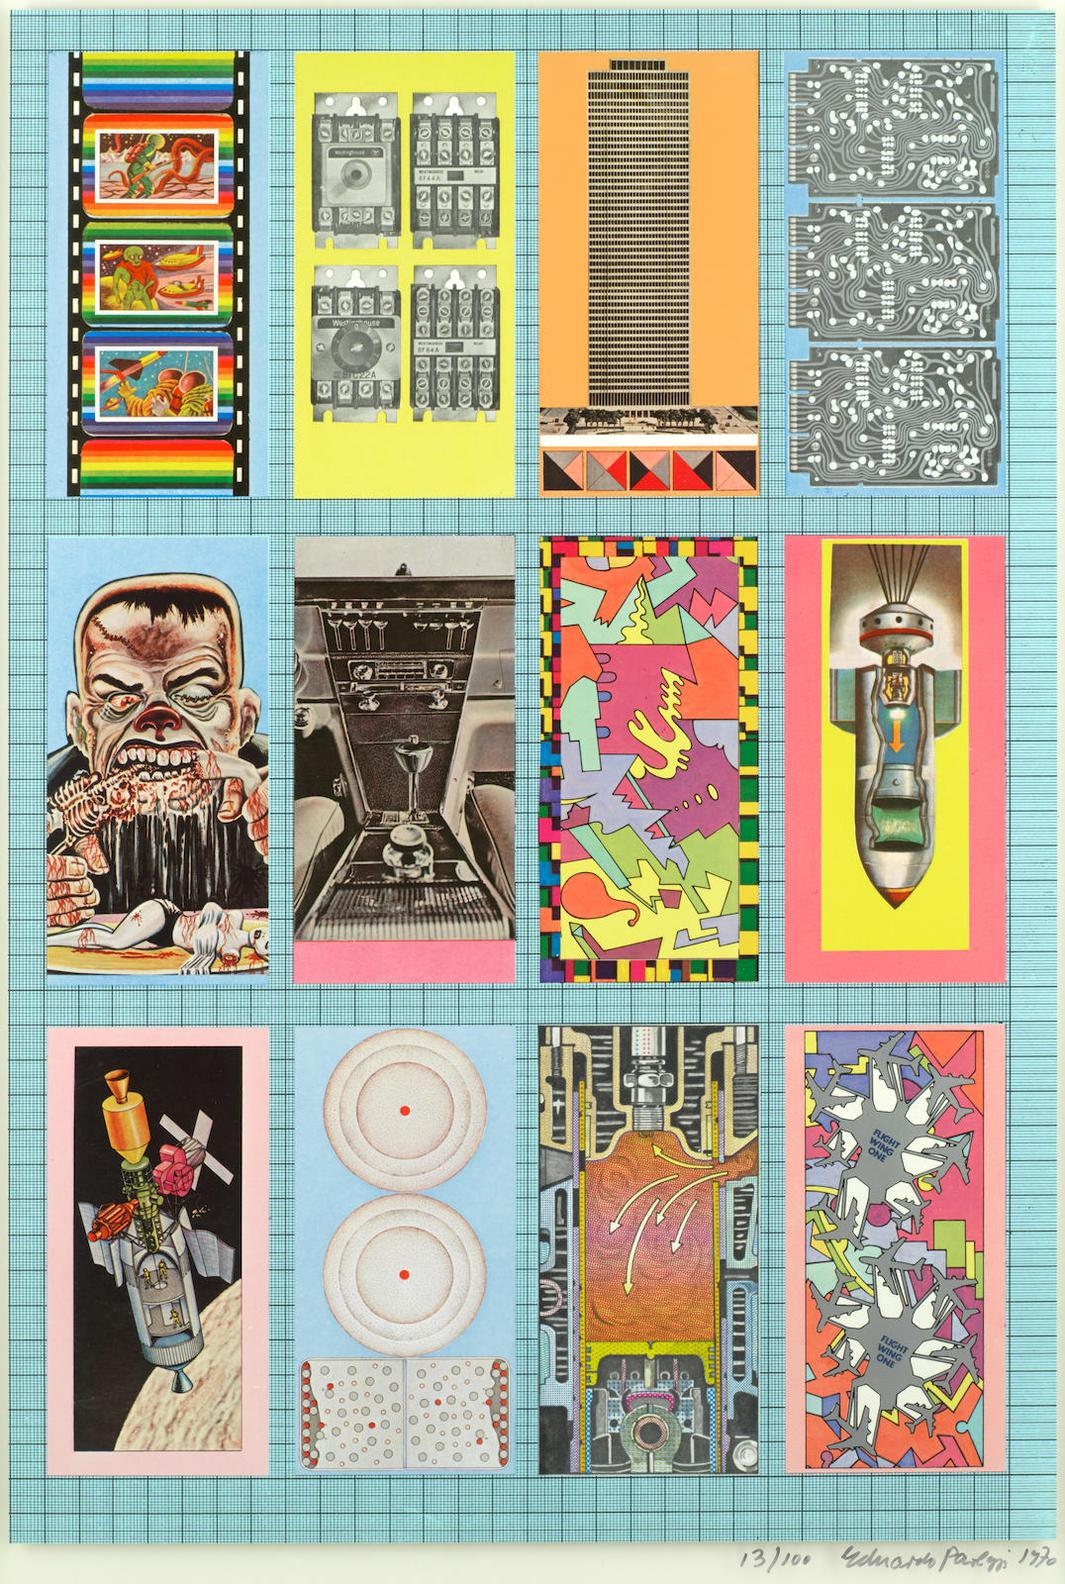 Sir Eduardo Paolozzi - Will The Future Ruler Of The Earth Come Forward From The Ranks Of The Insects, From Zero Energy Experimental Pile-1970